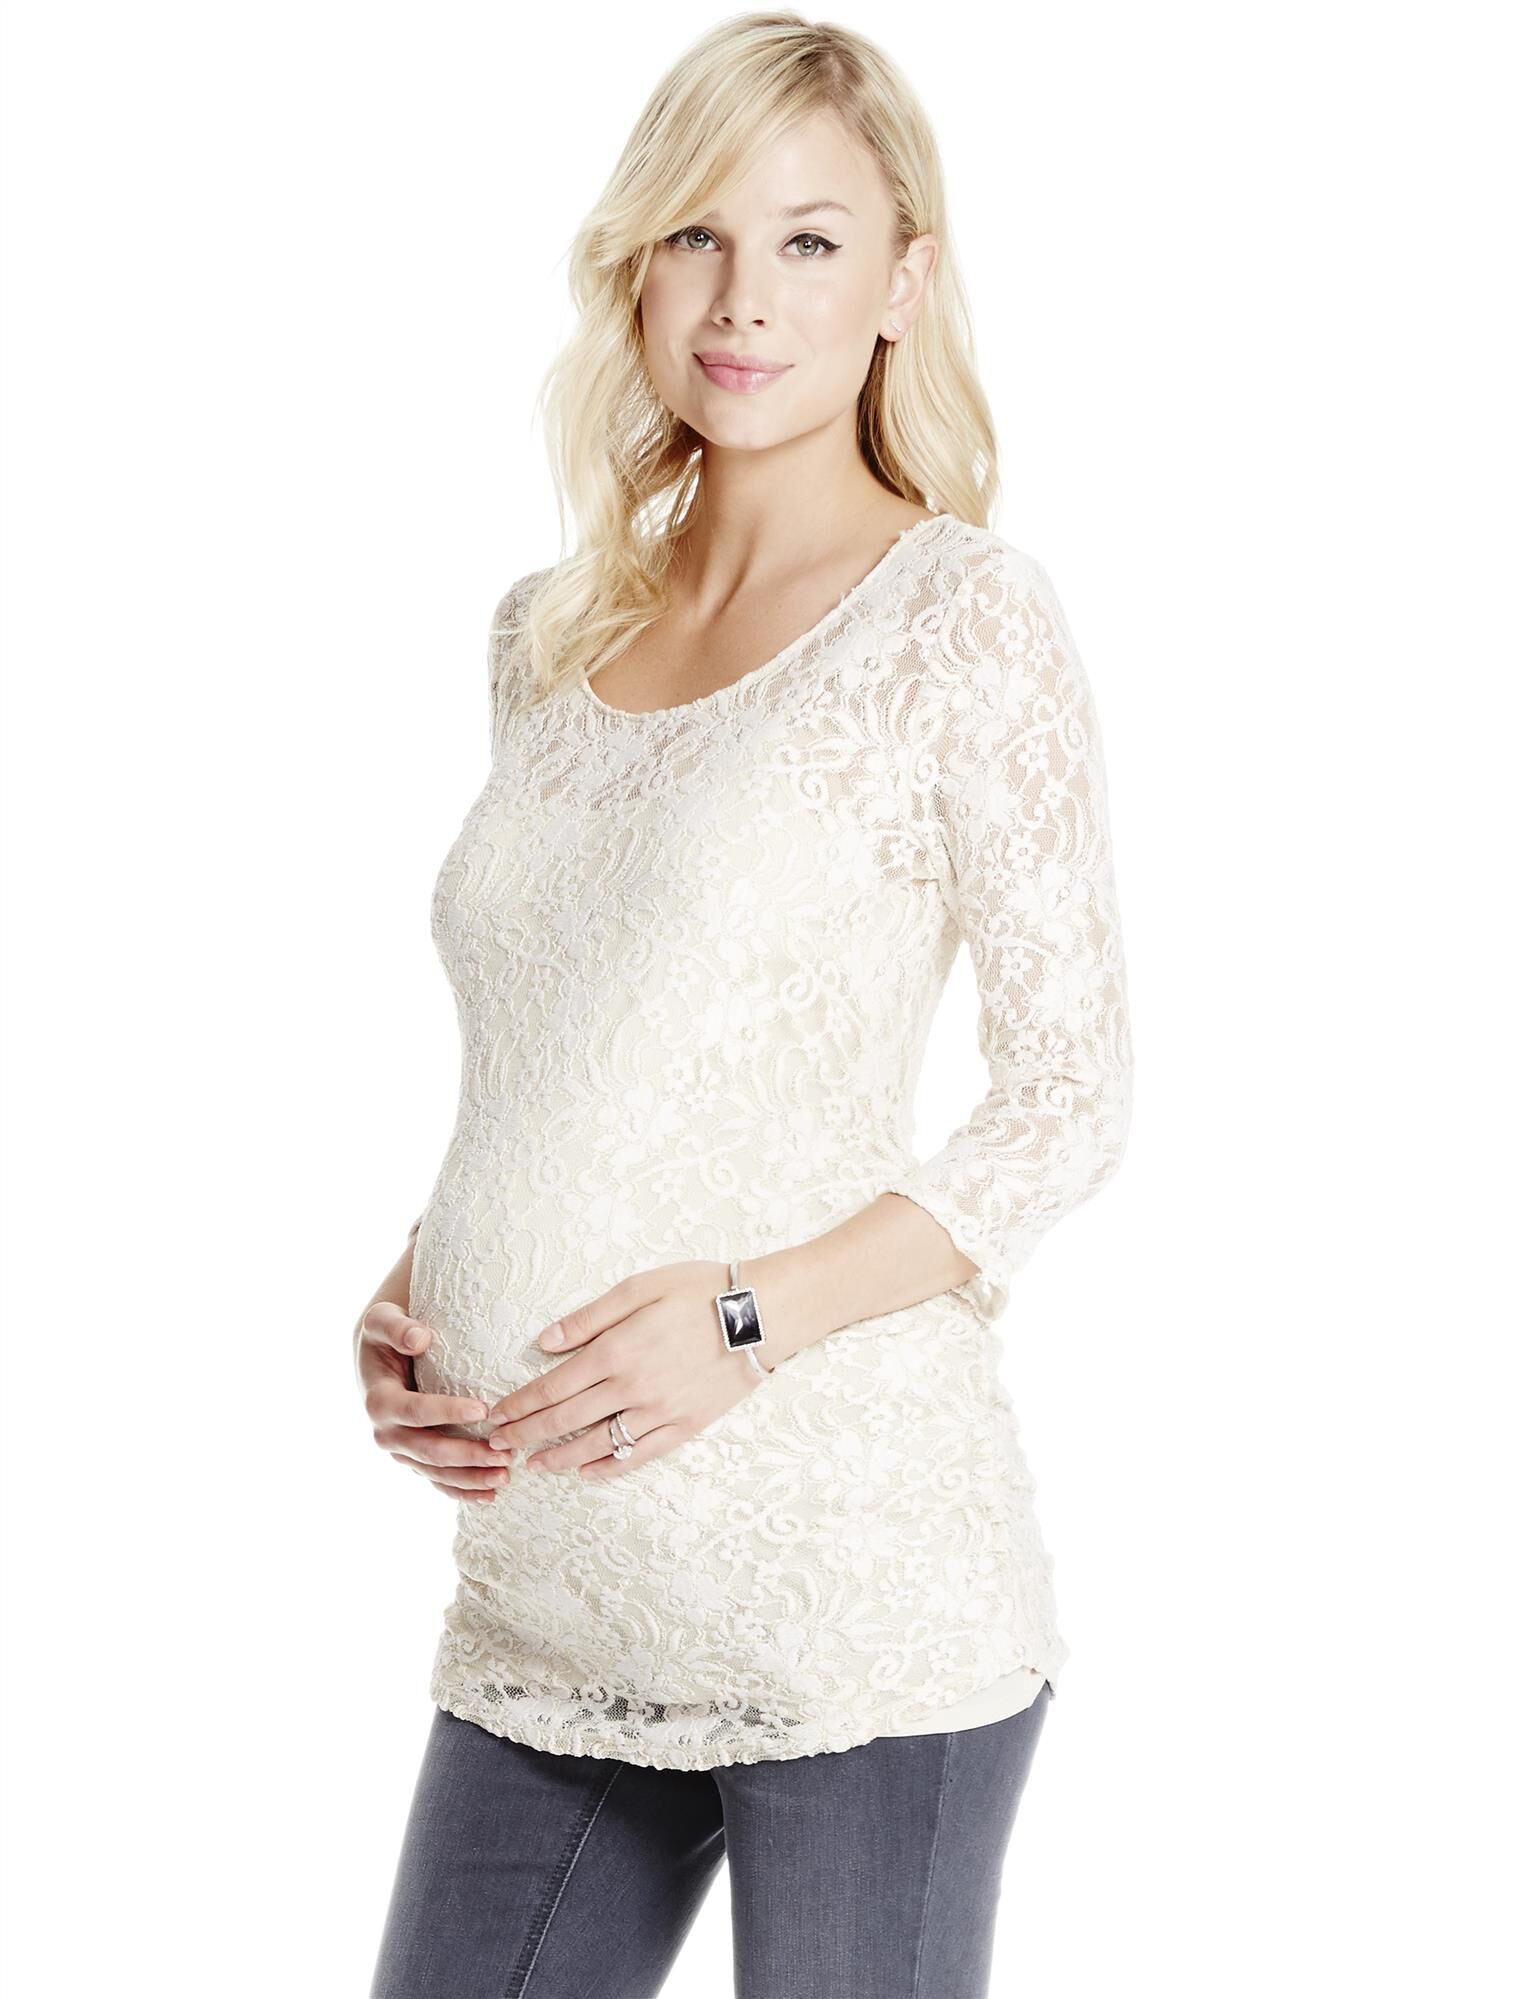 Jessica Simpson Floral Patterned Lace Maternity Top